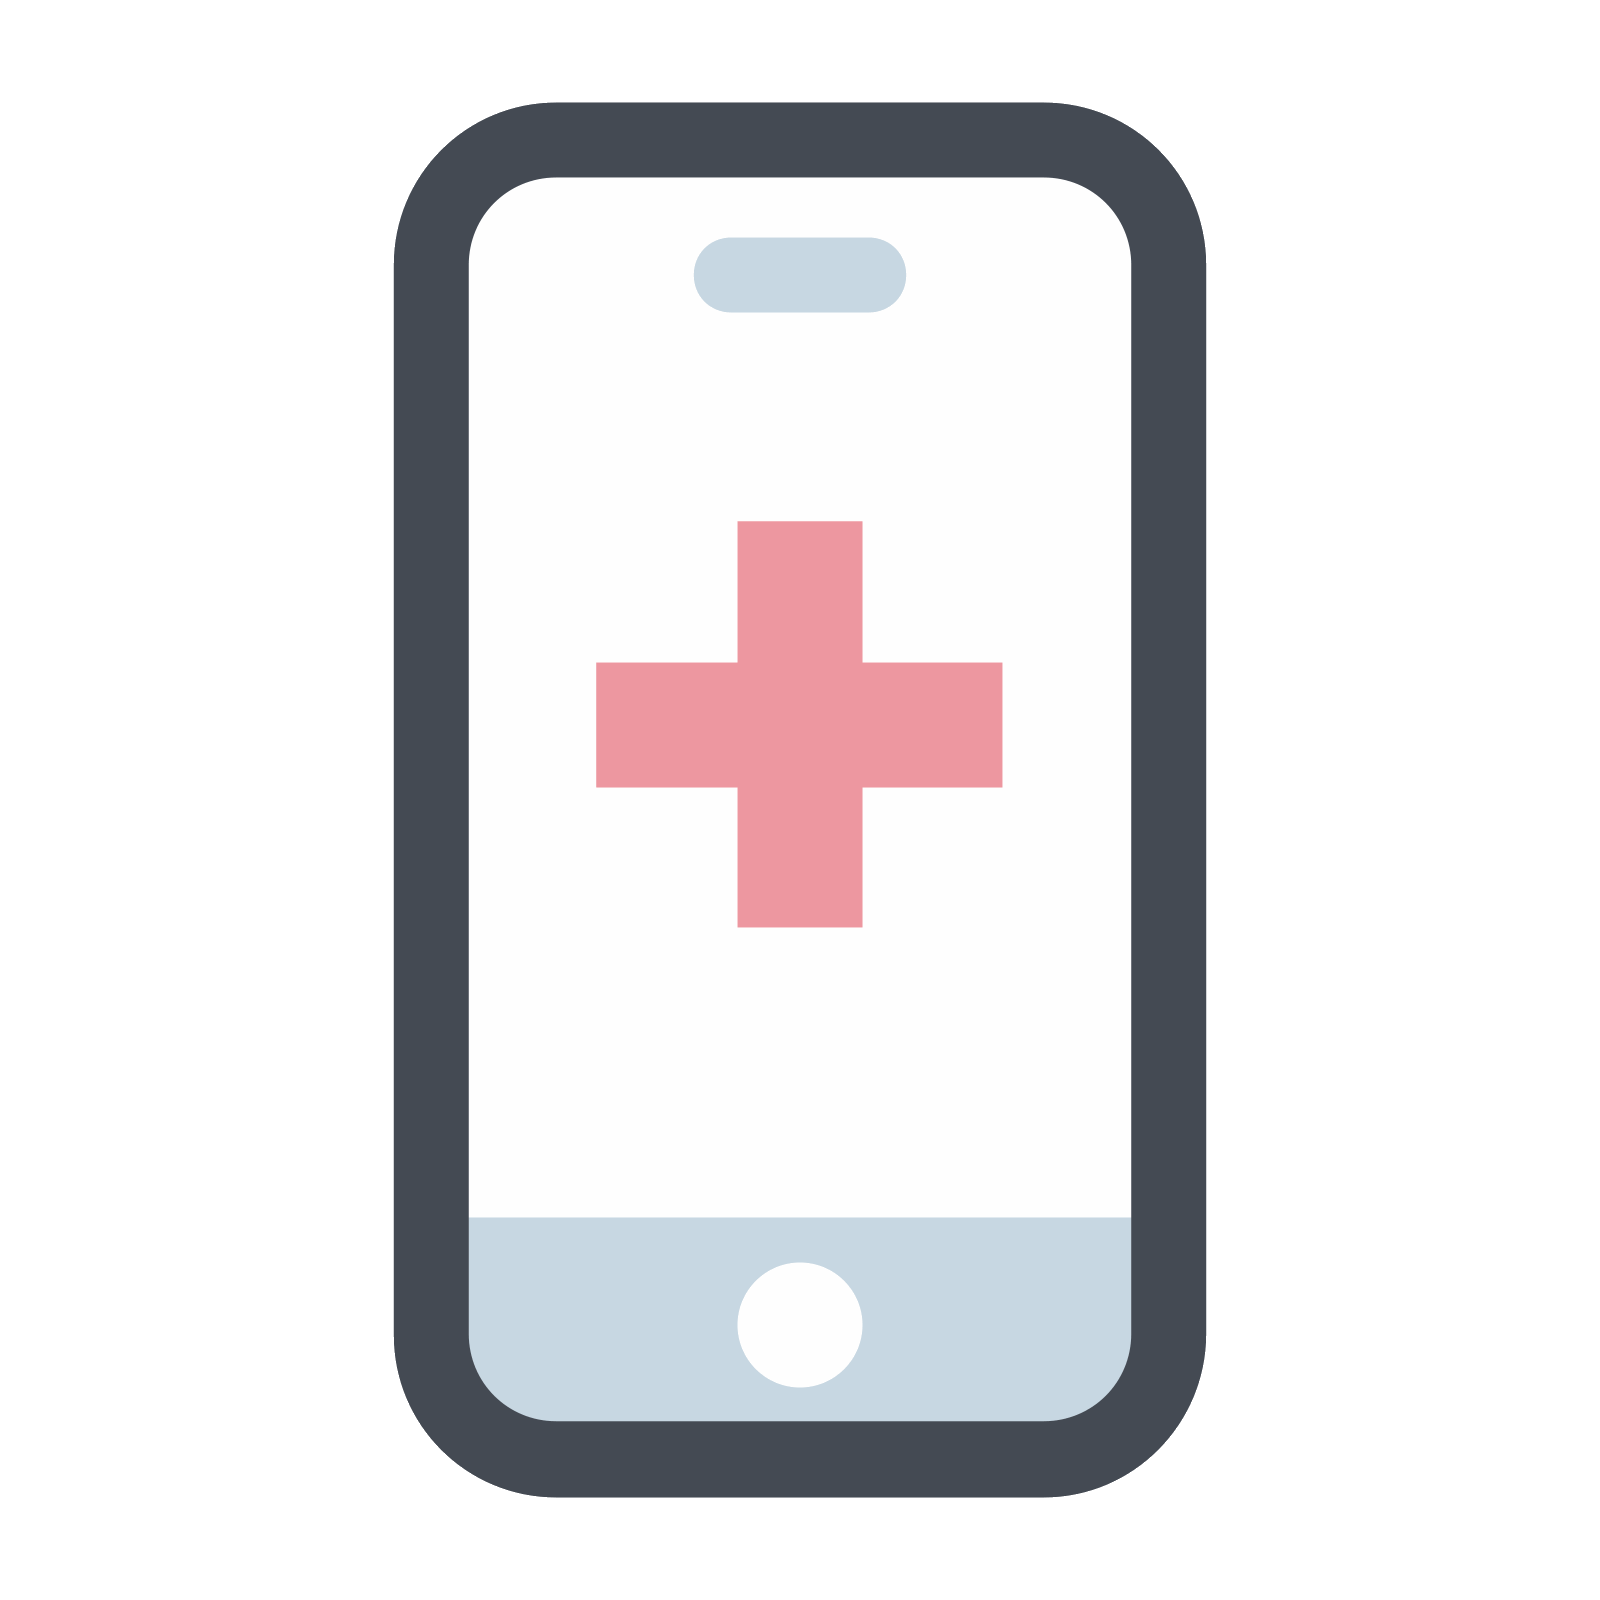 Mobile app icons png. Icona medical download gratuito